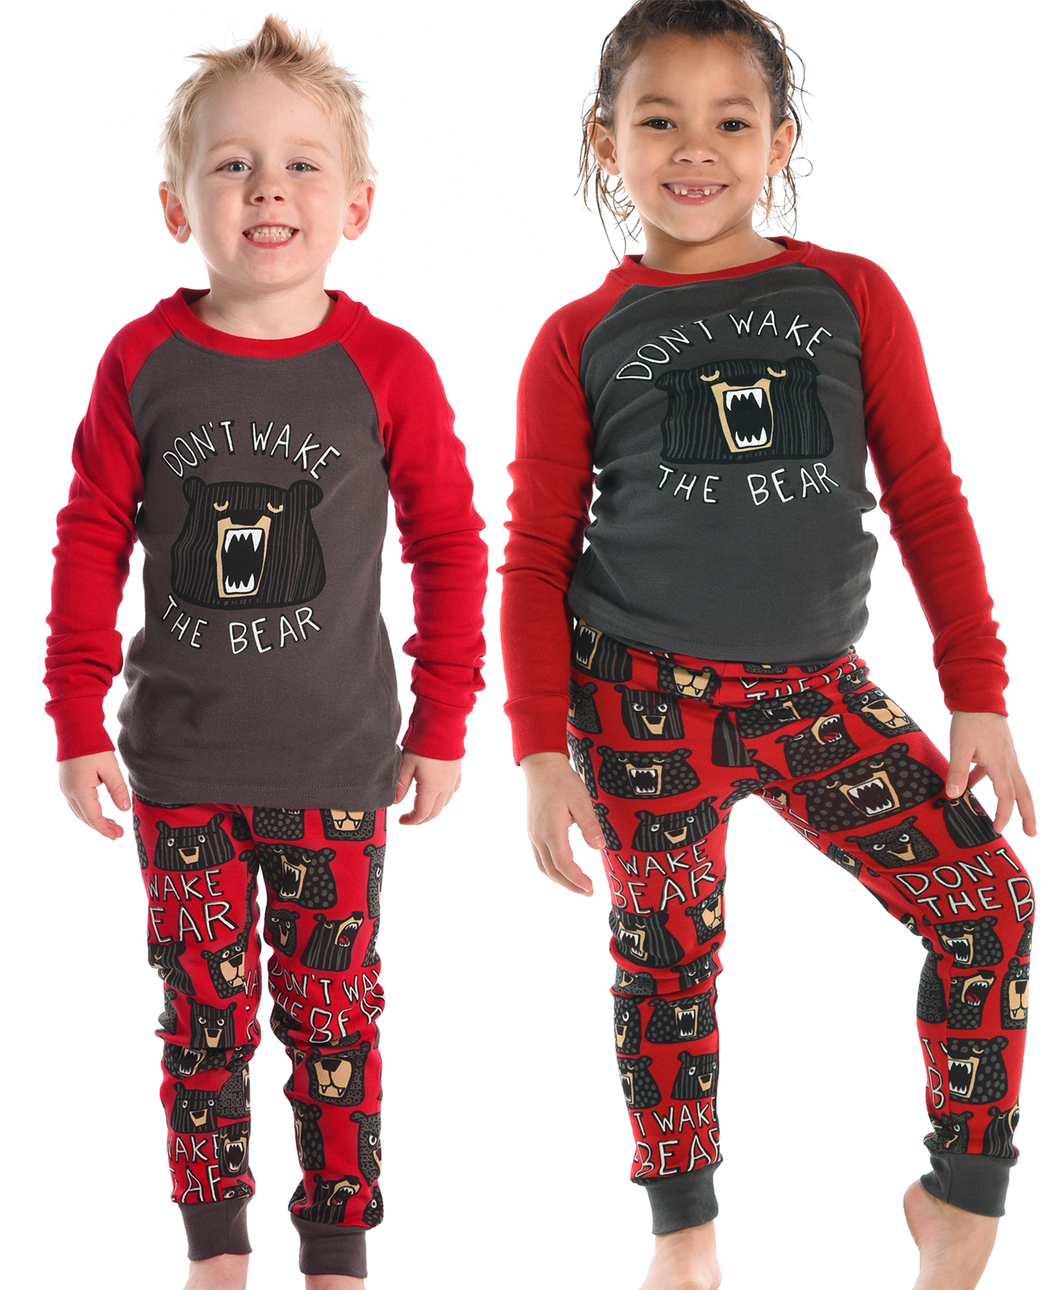 Don't Wake Bear Kid's Long Sleeve PJ's